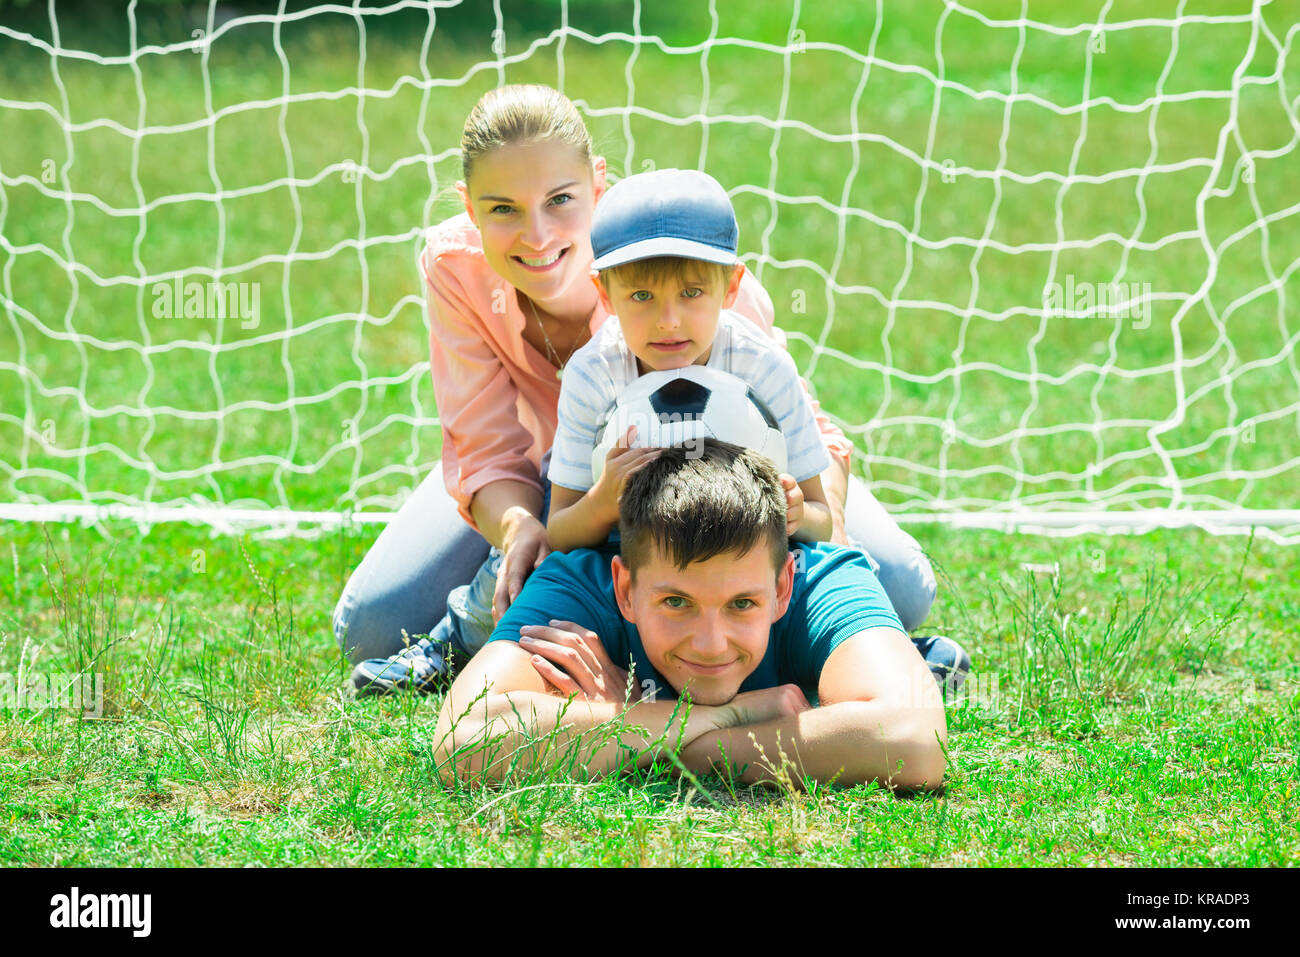 Portrait Of Happy Family With Soccer Ball - Stock Image